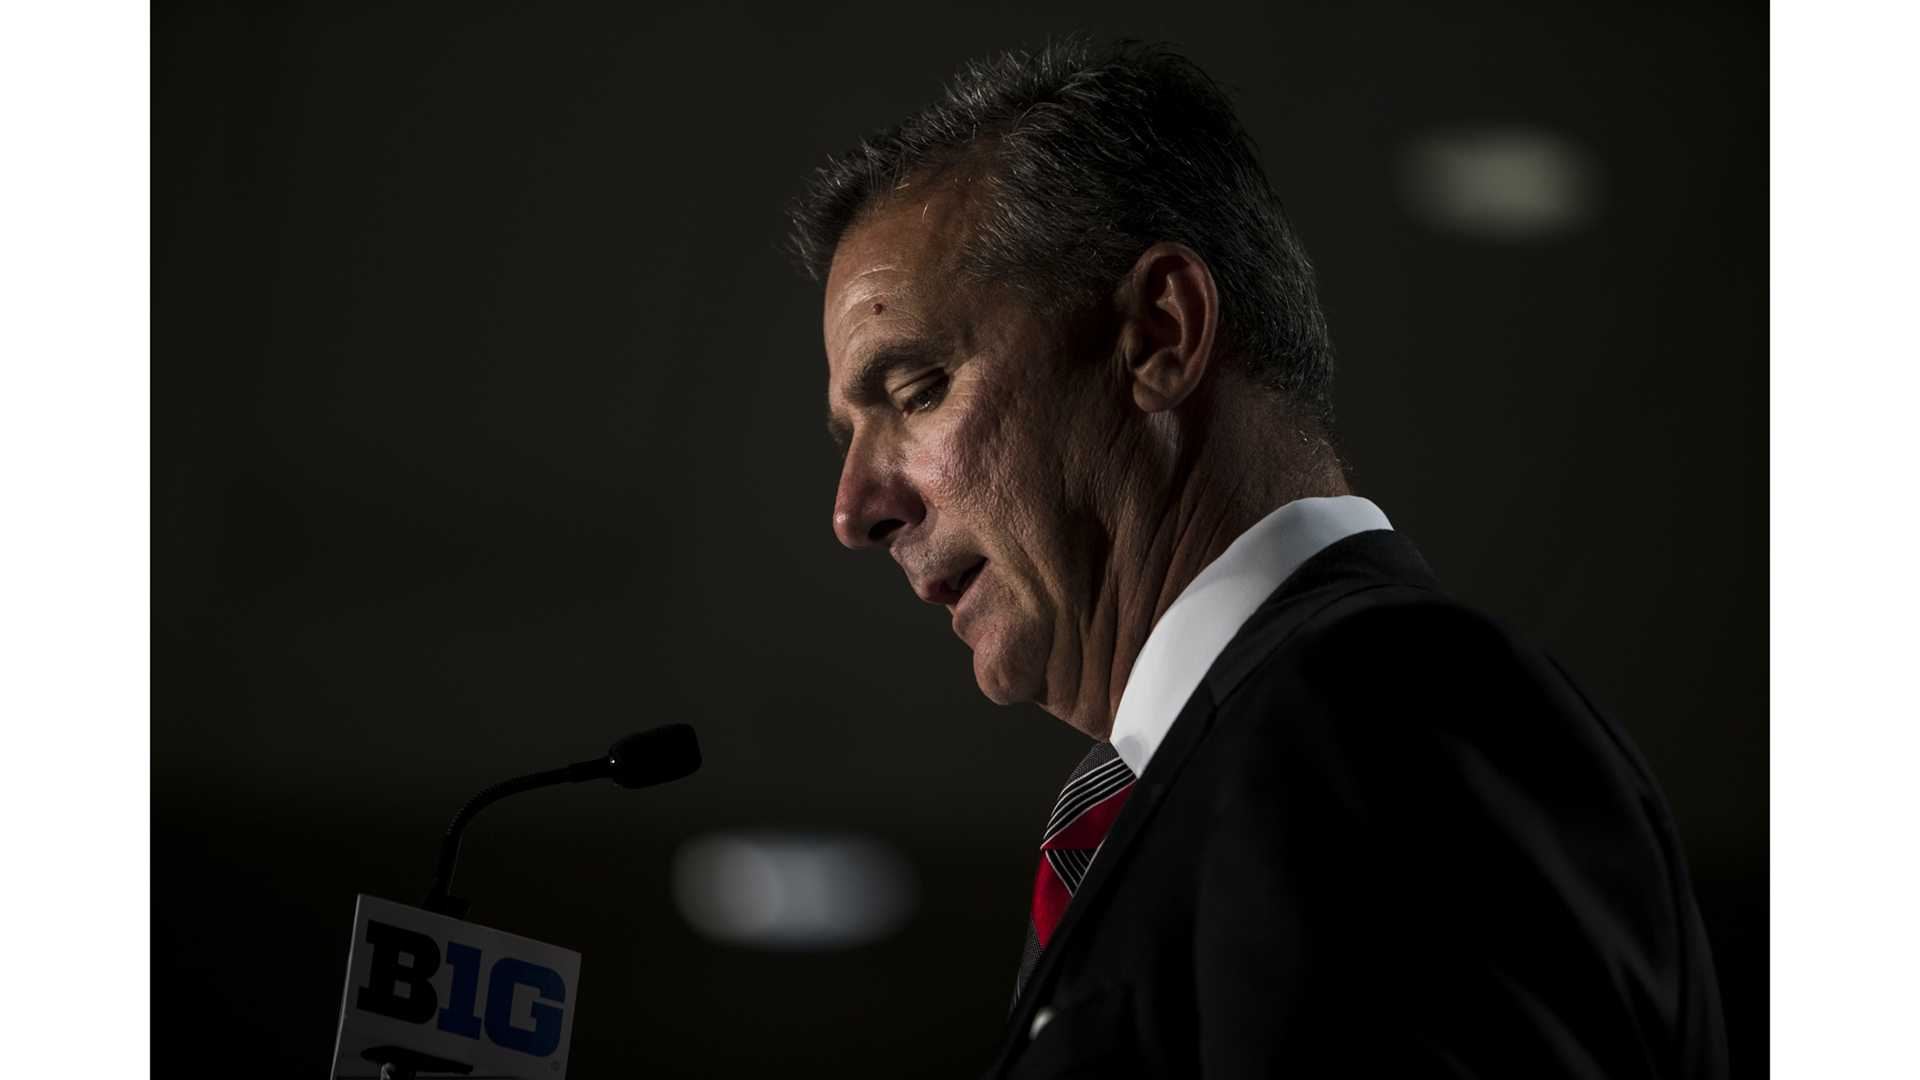 Ohio State Head Coach Urban Meyer addresses the media during Big Ten Football Media Days in Chicago on Tuesday, July 24, 2018. Meyer fired Wide Receivers coach Zach Smith on Monday amid allegations of domestic violence.